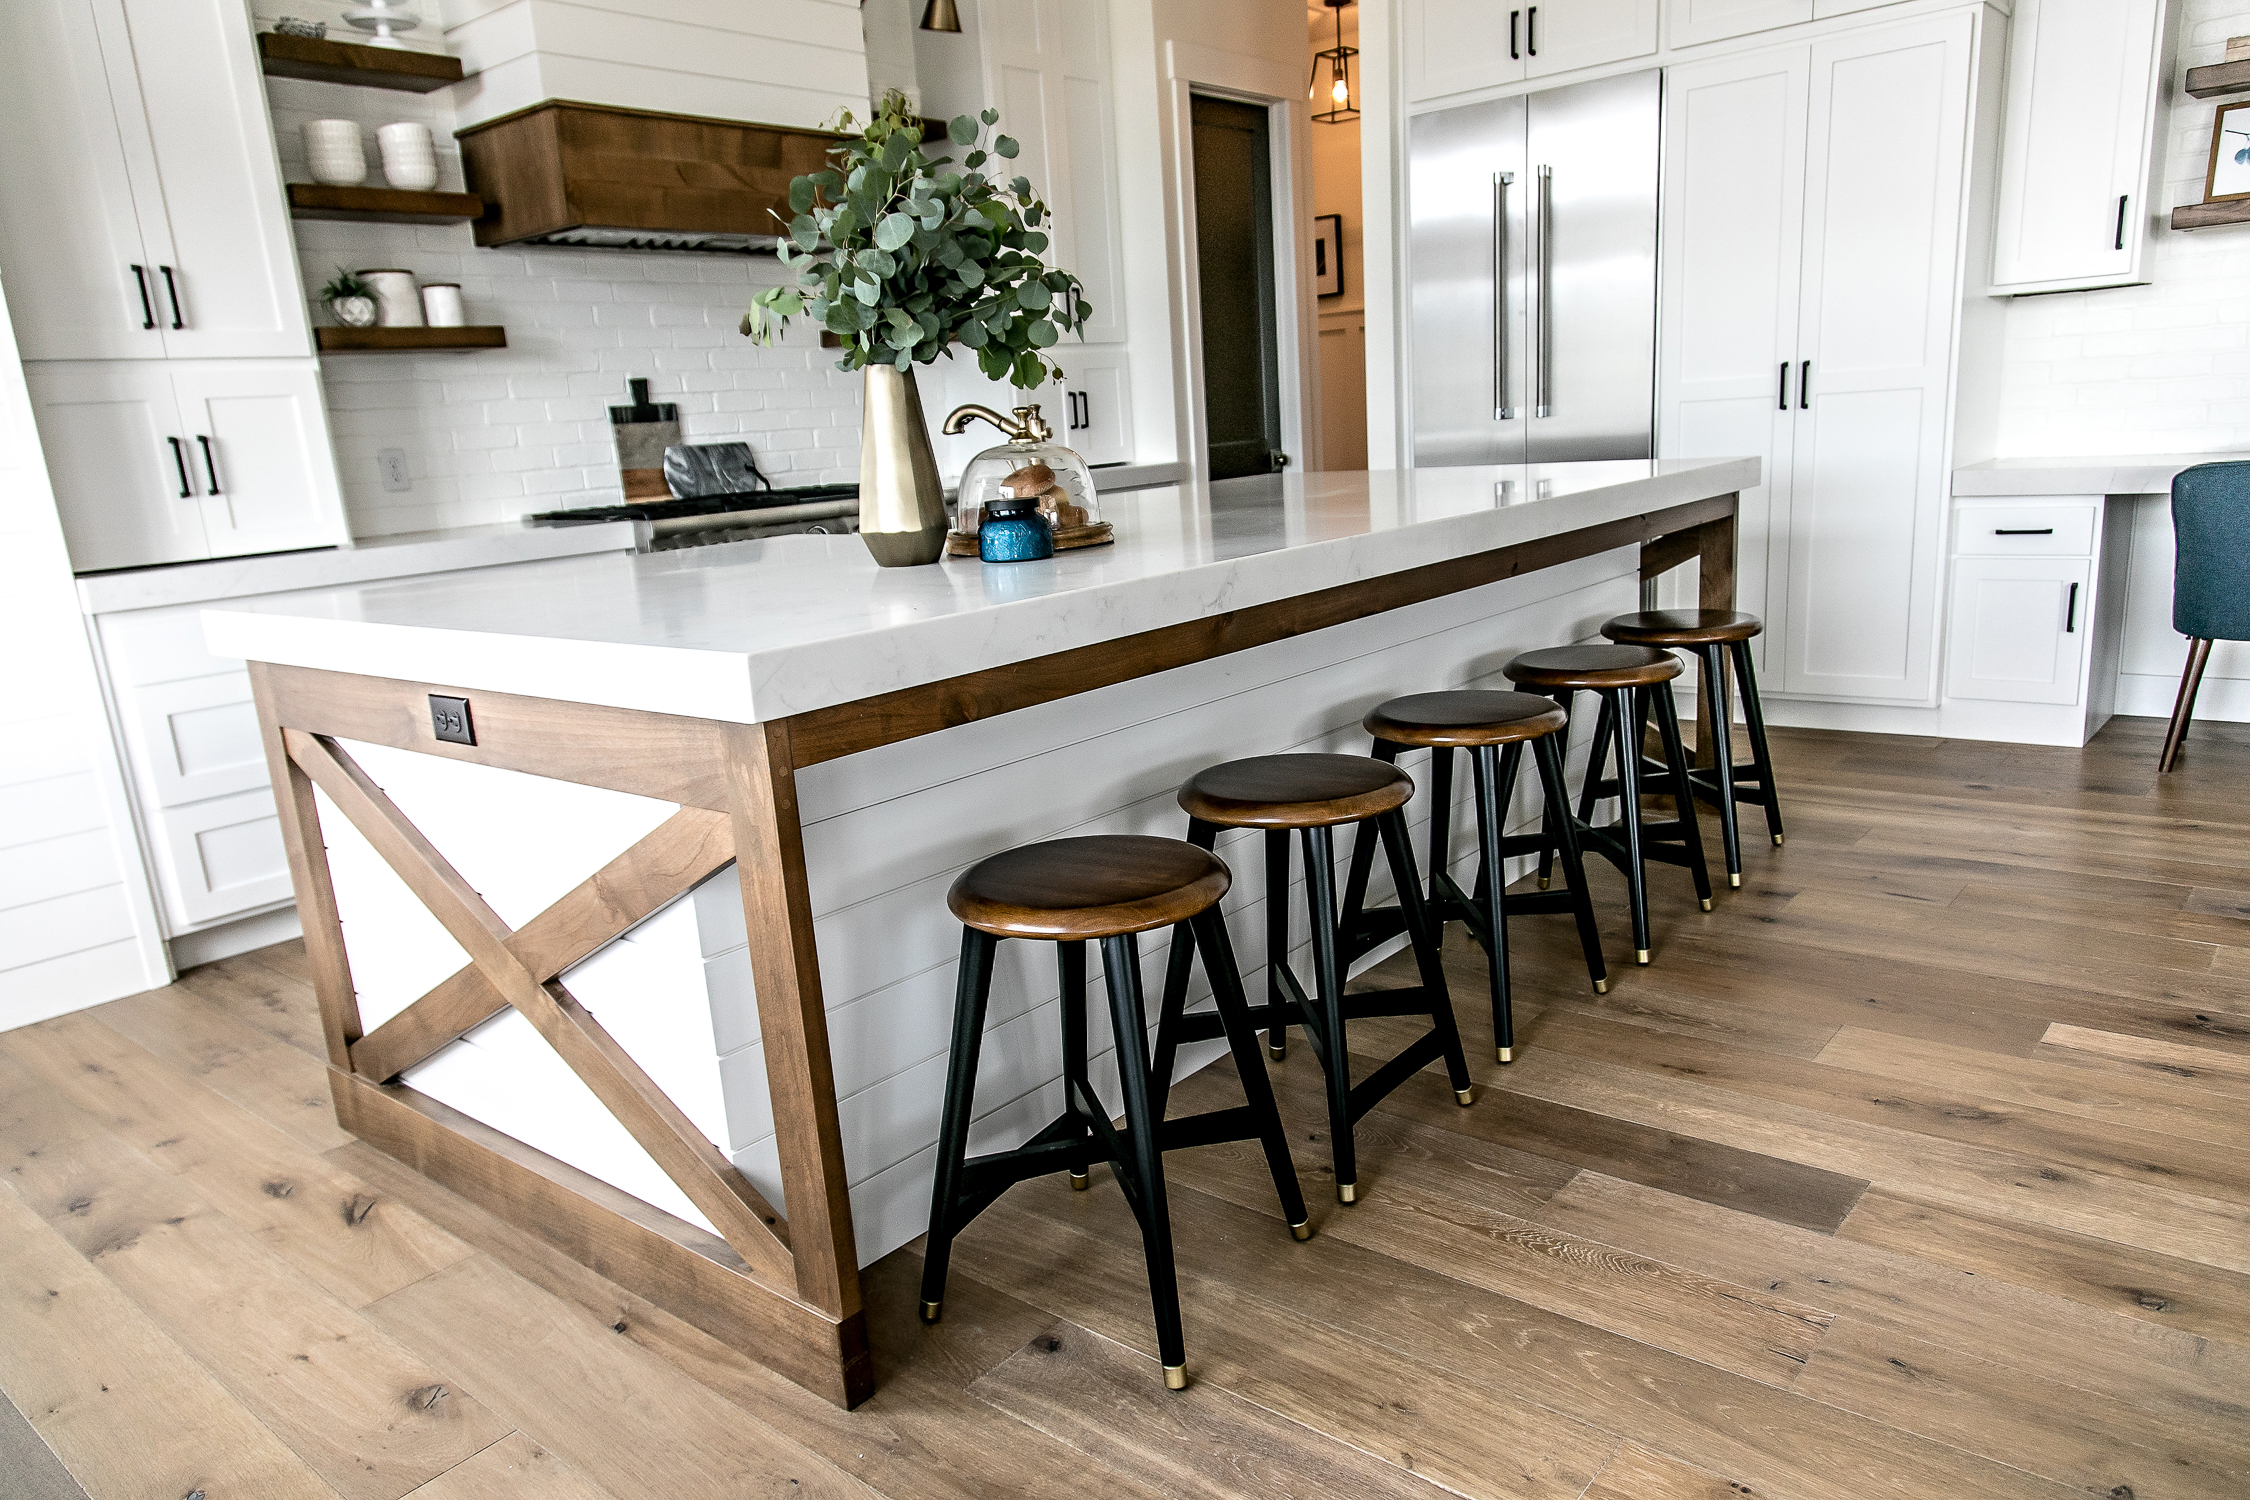 Farmhouse Kitchen smi modern farmhouse kitchen and dining nook - sita montgomery